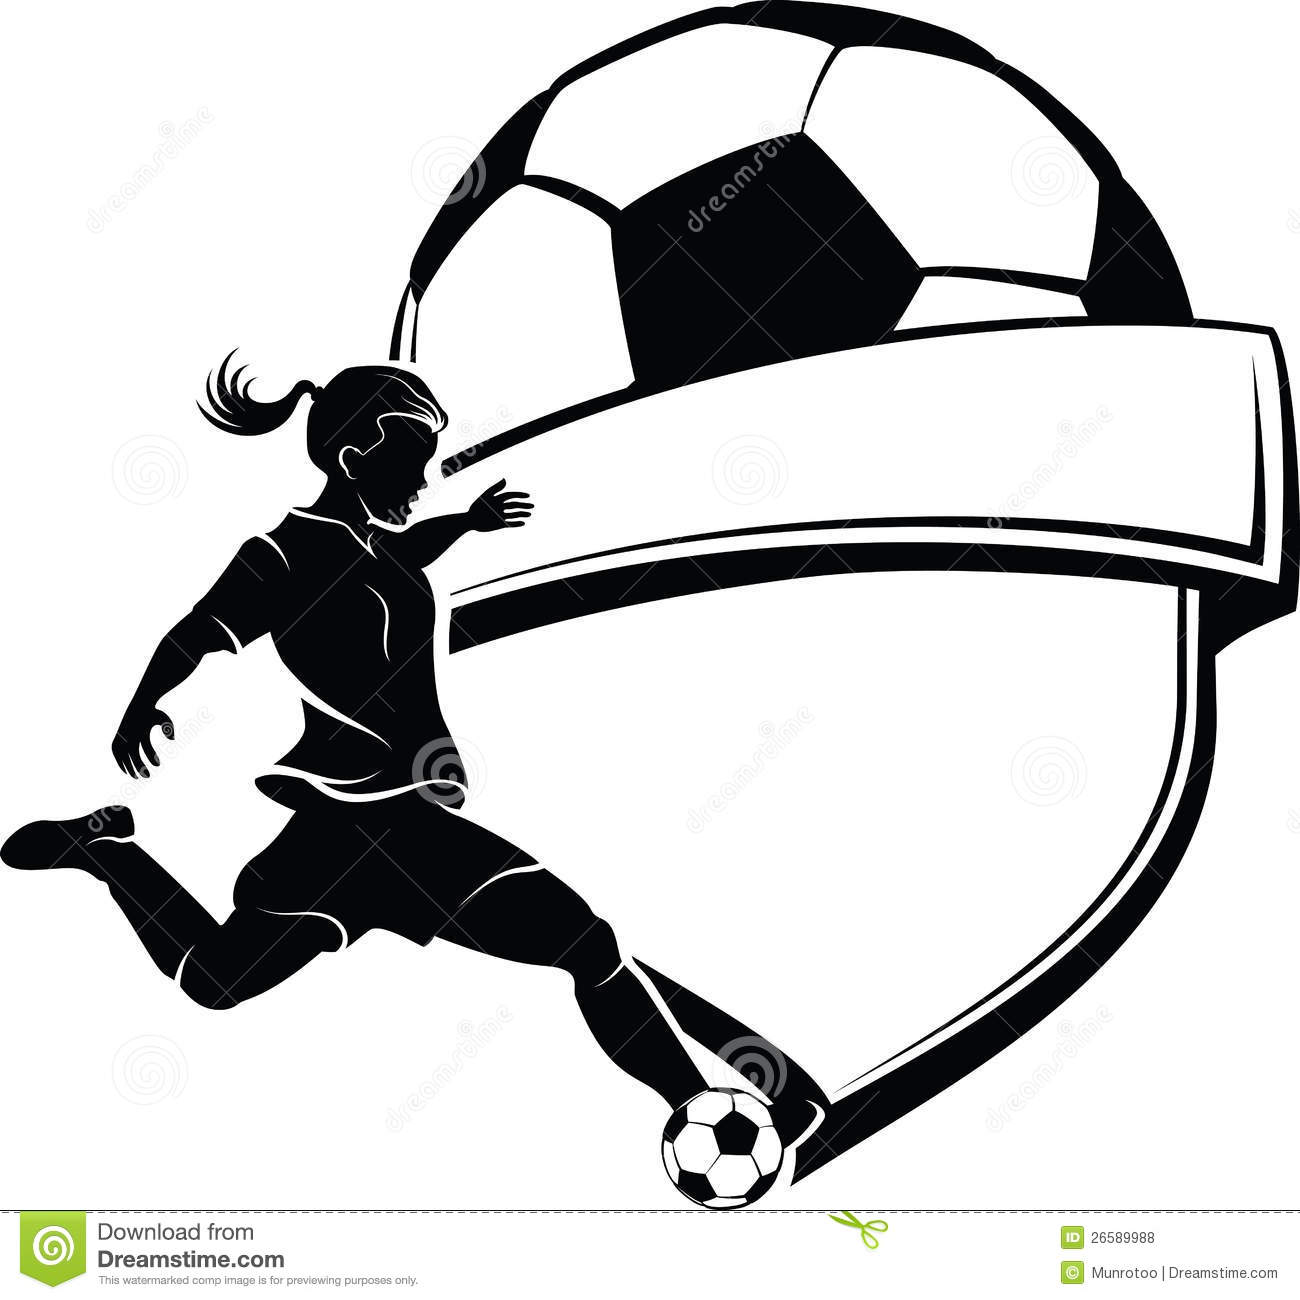 Shield design set royalty free stock photos image 5051988 - Girl Soccer Shield Royalty Free Stock Photos